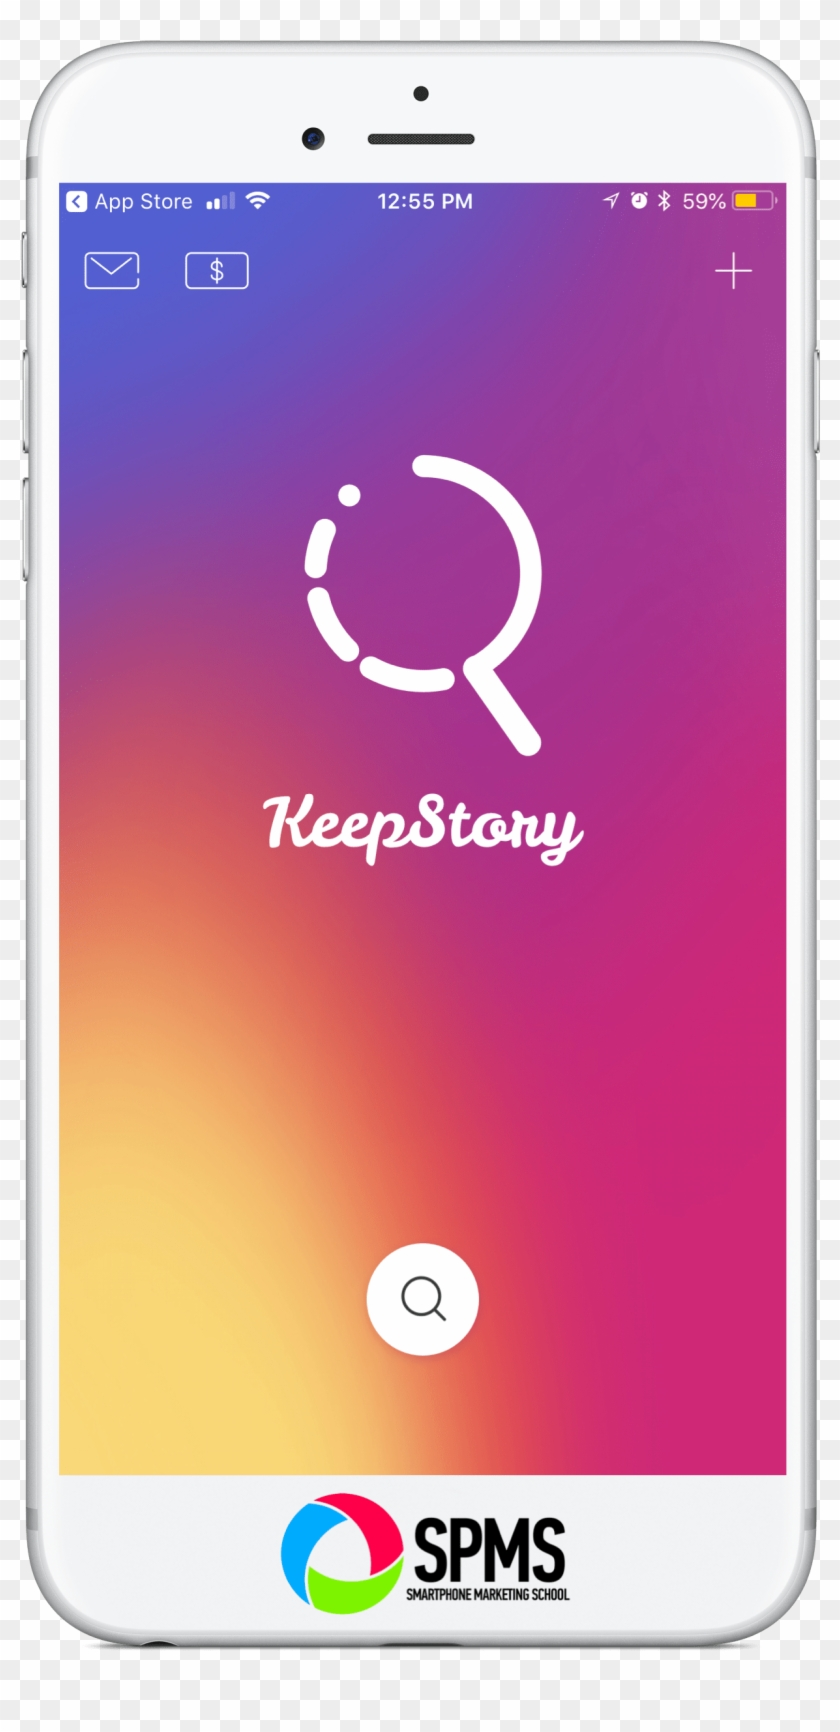 Download And Repost Instagram Stories With The Ios - Instagram Story